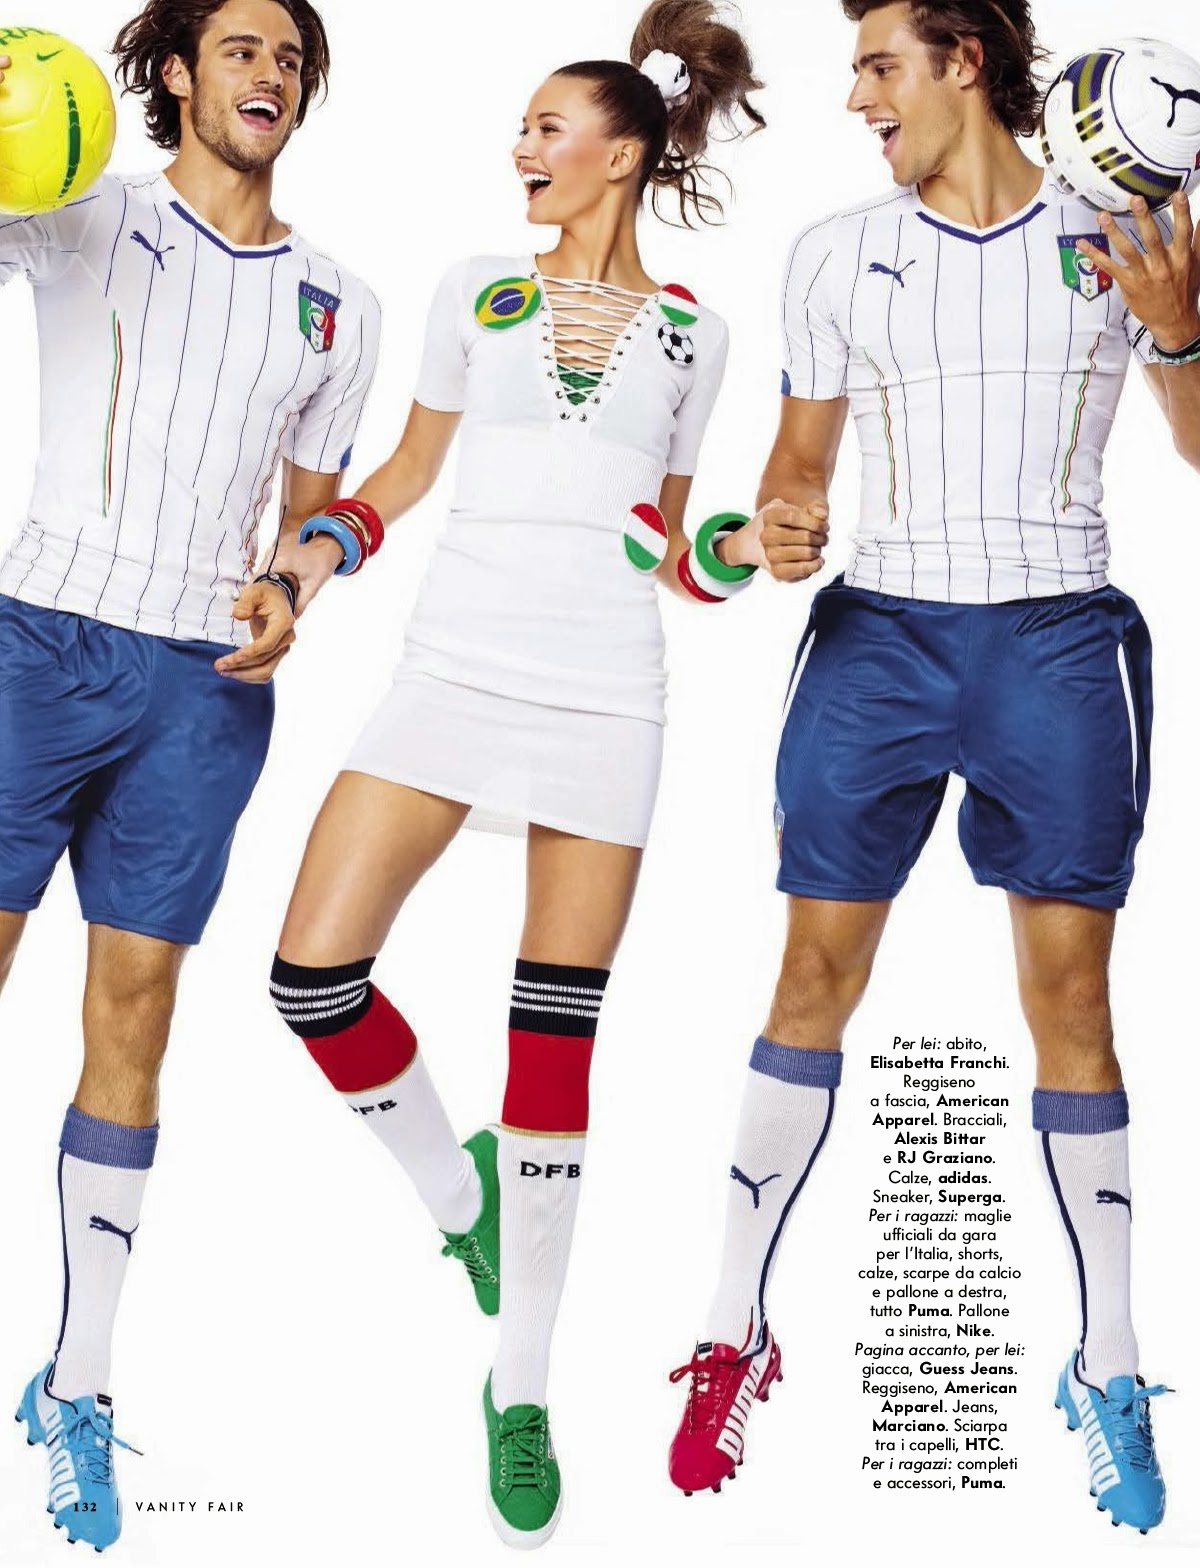 Kristina Romanova And Jordan And Zac Stenmark By Stewart Shining For Vanity Fair Magazine, Italia, June 2014